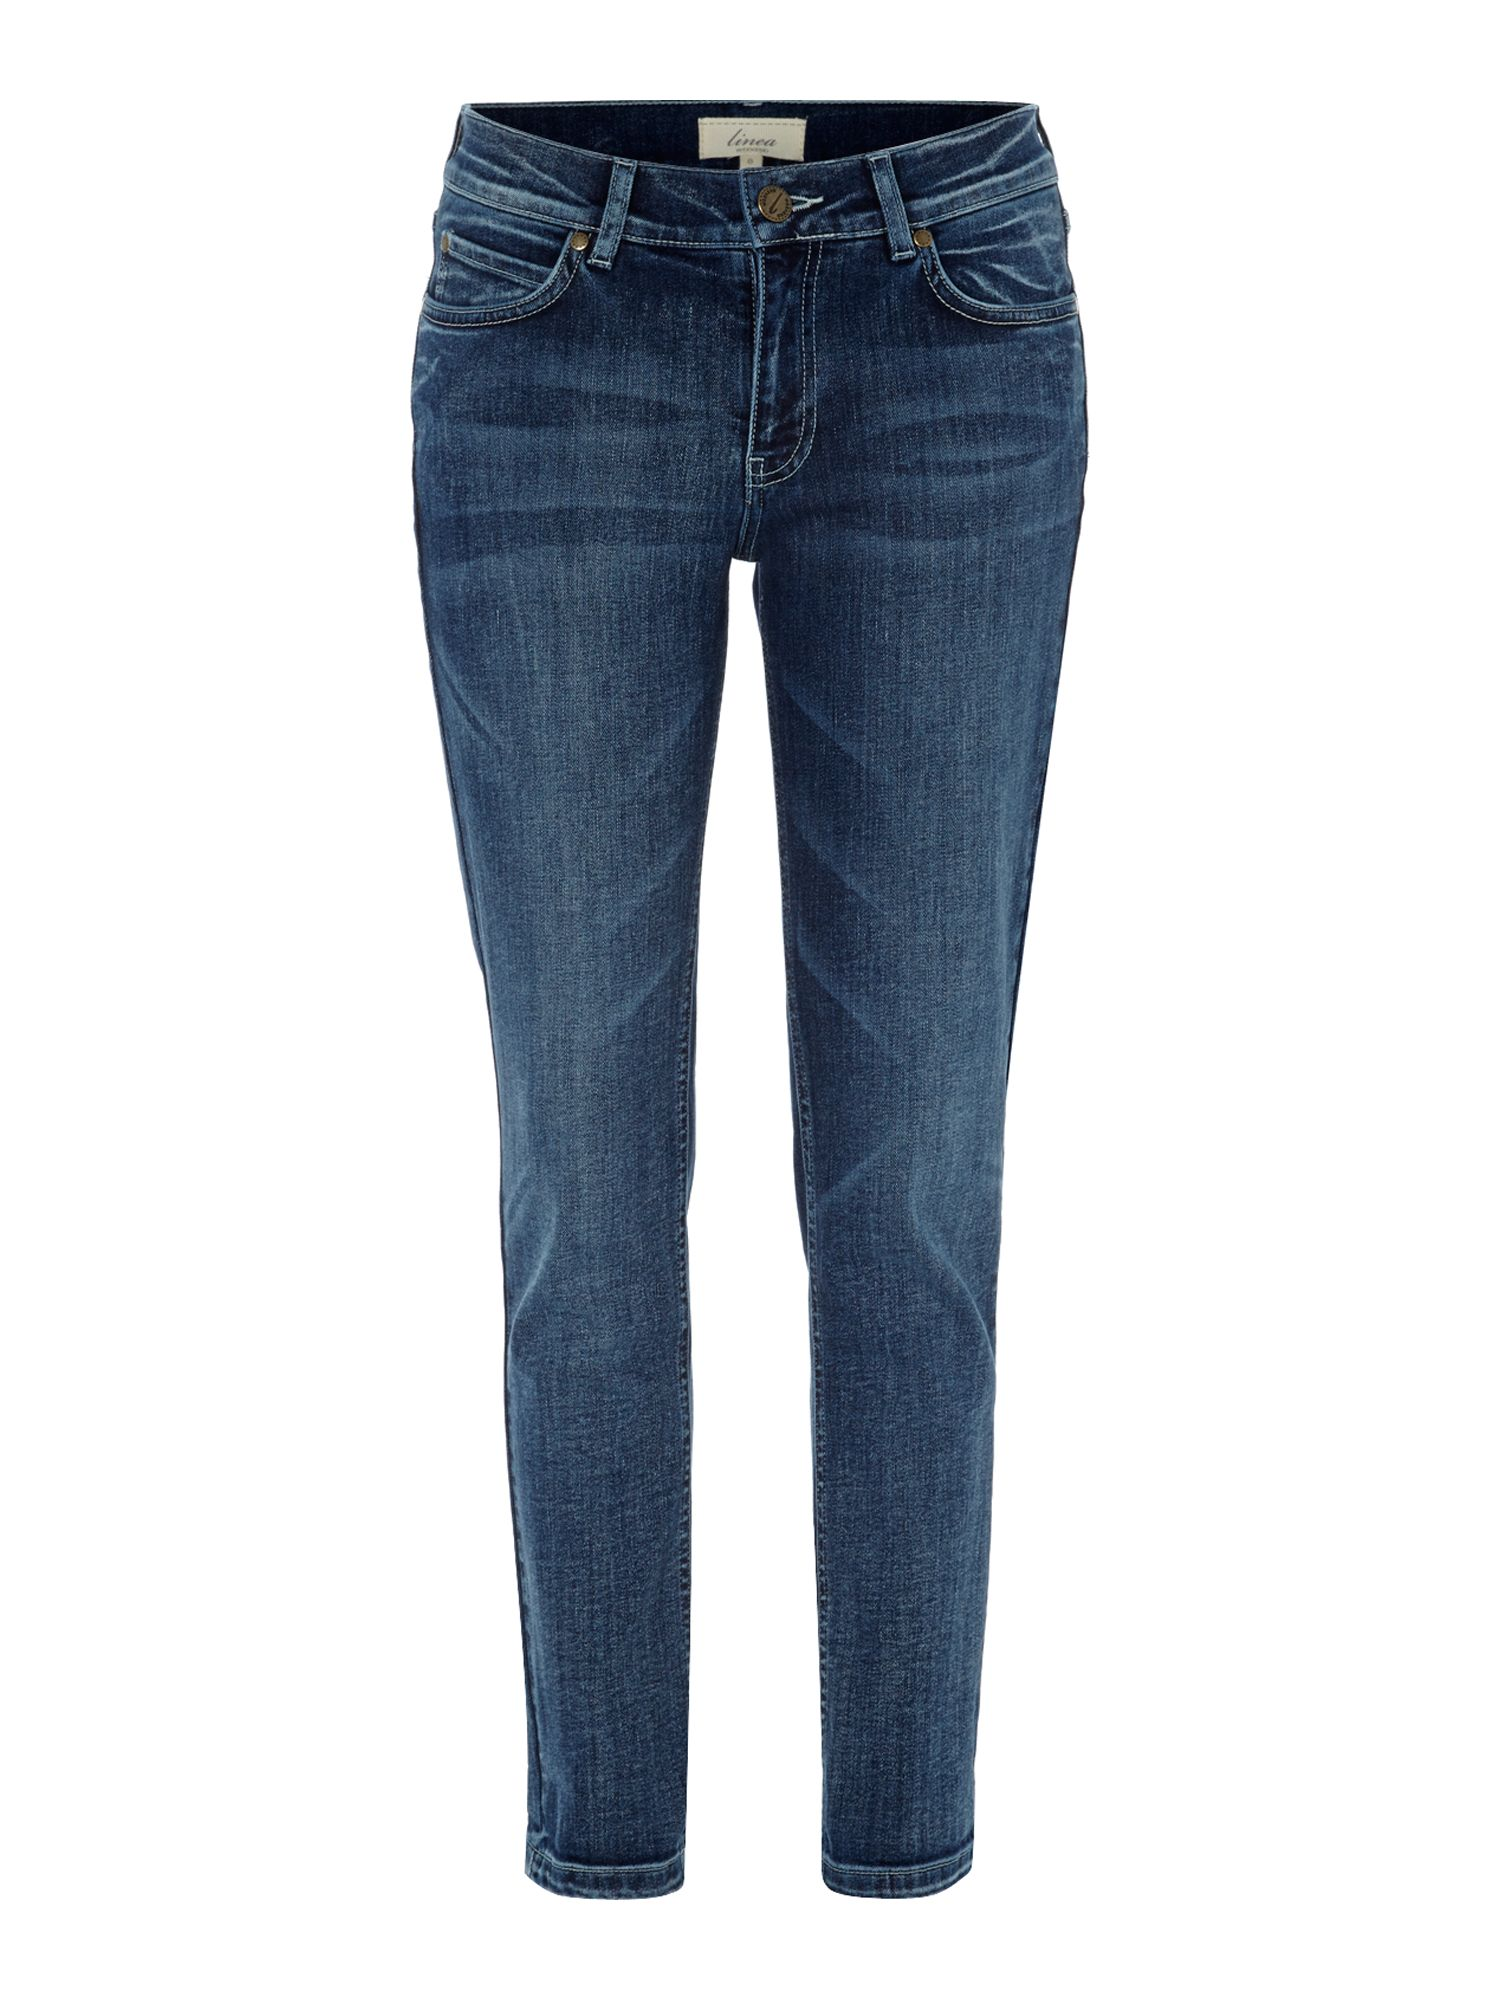 Ladies slim boyfriend jeans